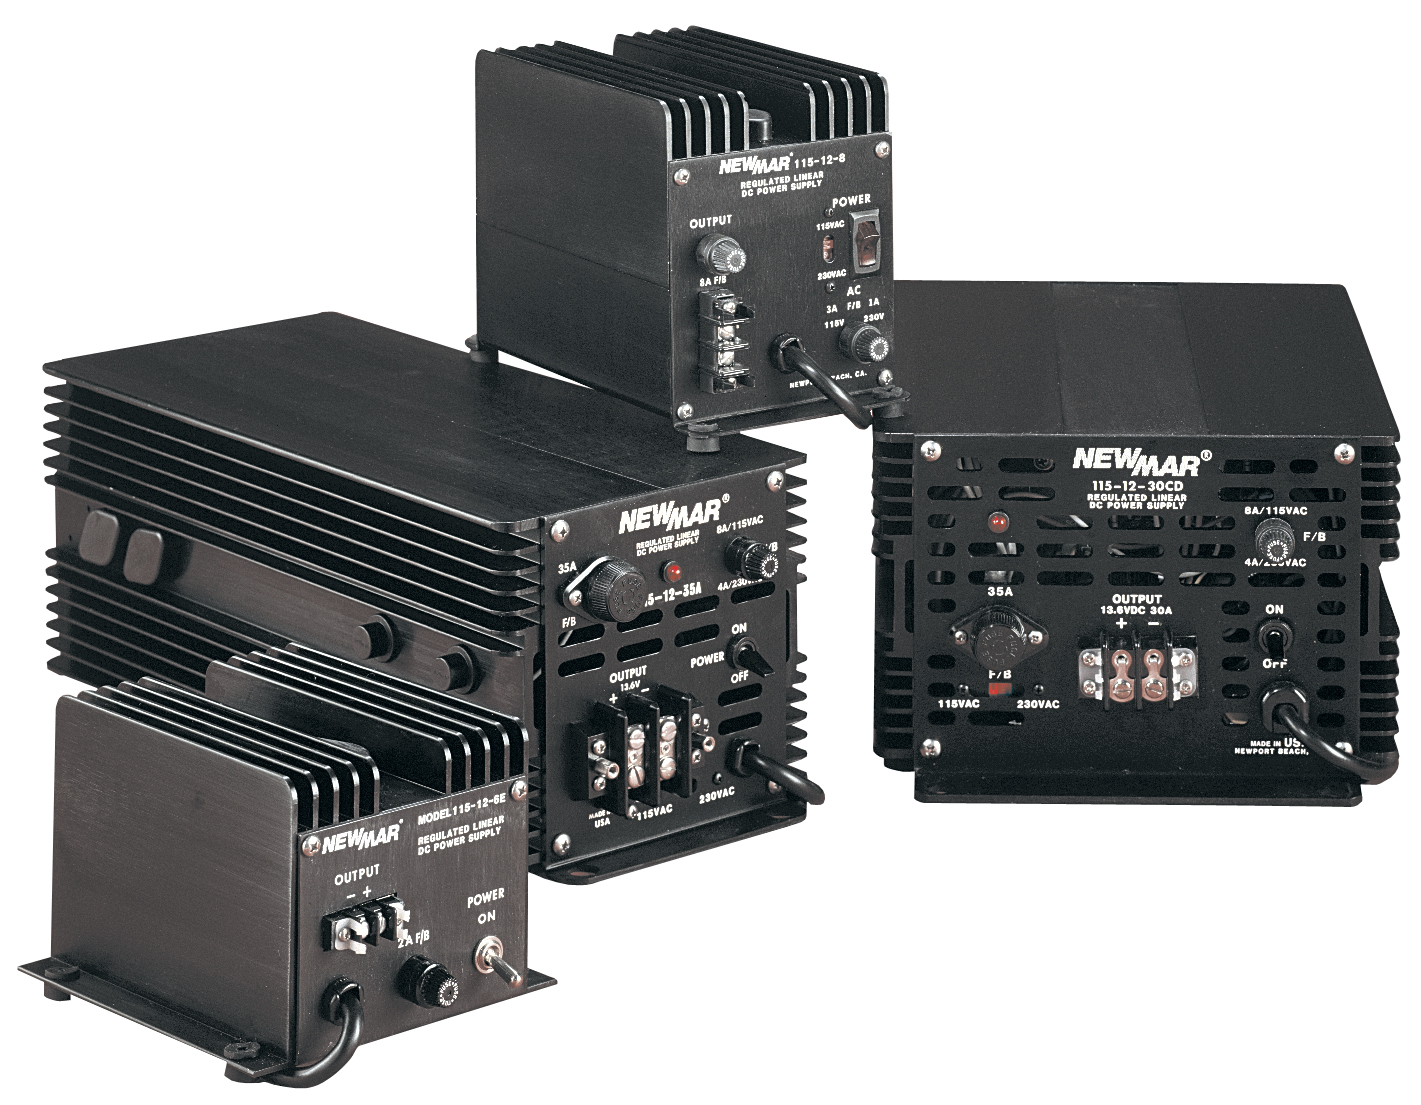 Newmar DC Power Onboard Heavy Duty Power Supplies, 115/230V AC, 12V and 24V DC, 8 - 35 Amps